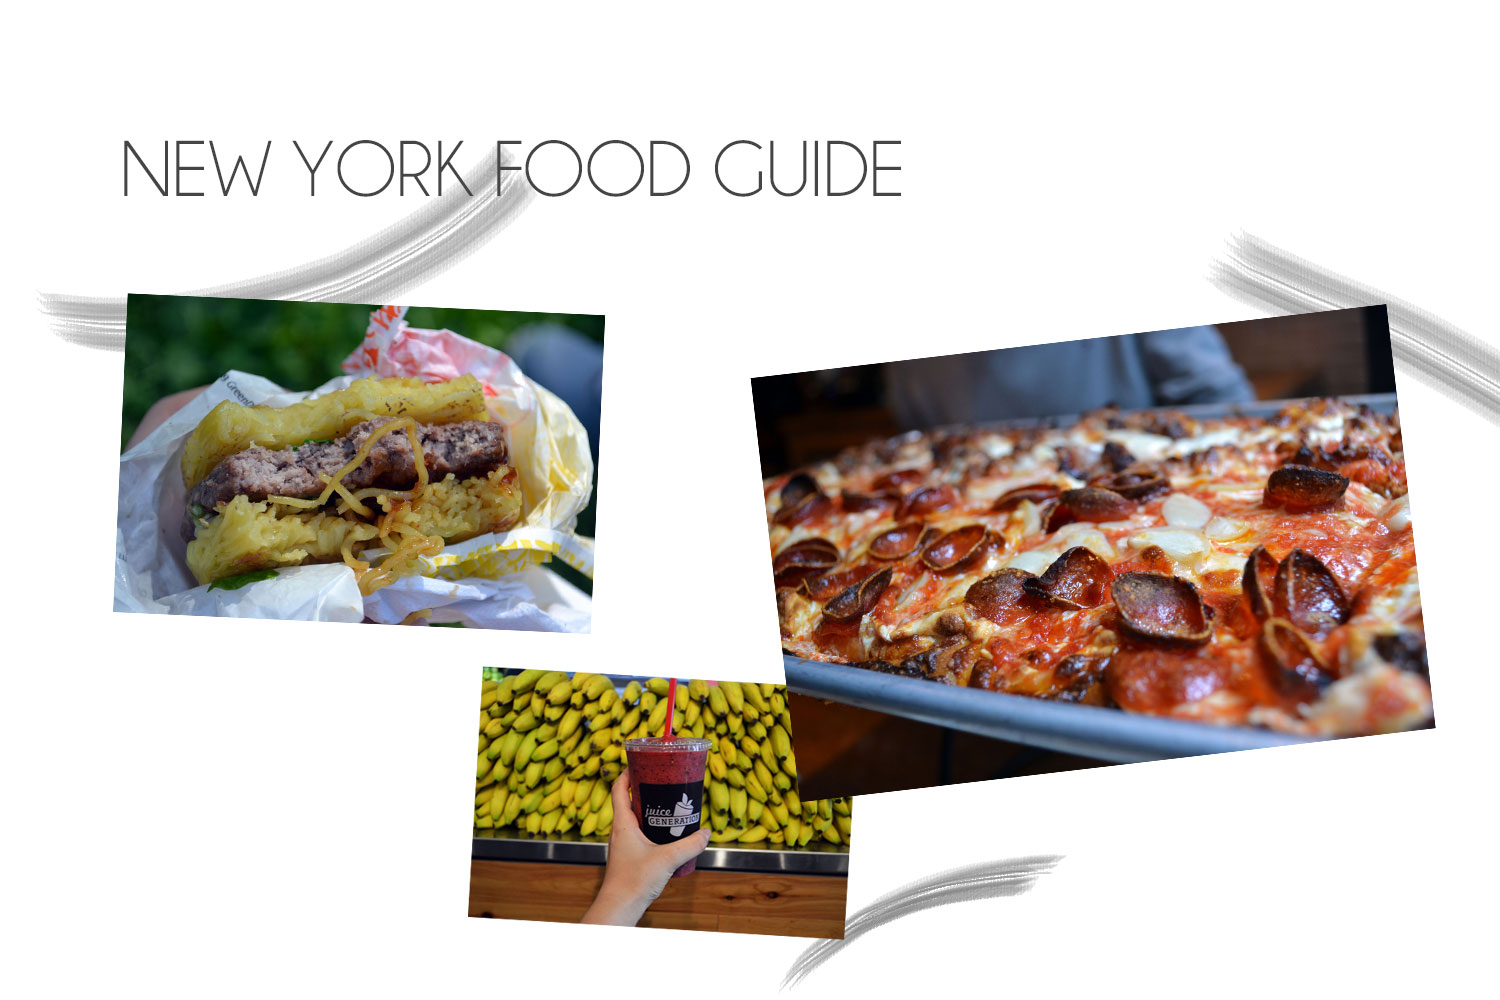 New York Food Guide: Mijn Favoriete Restaurants in NYC